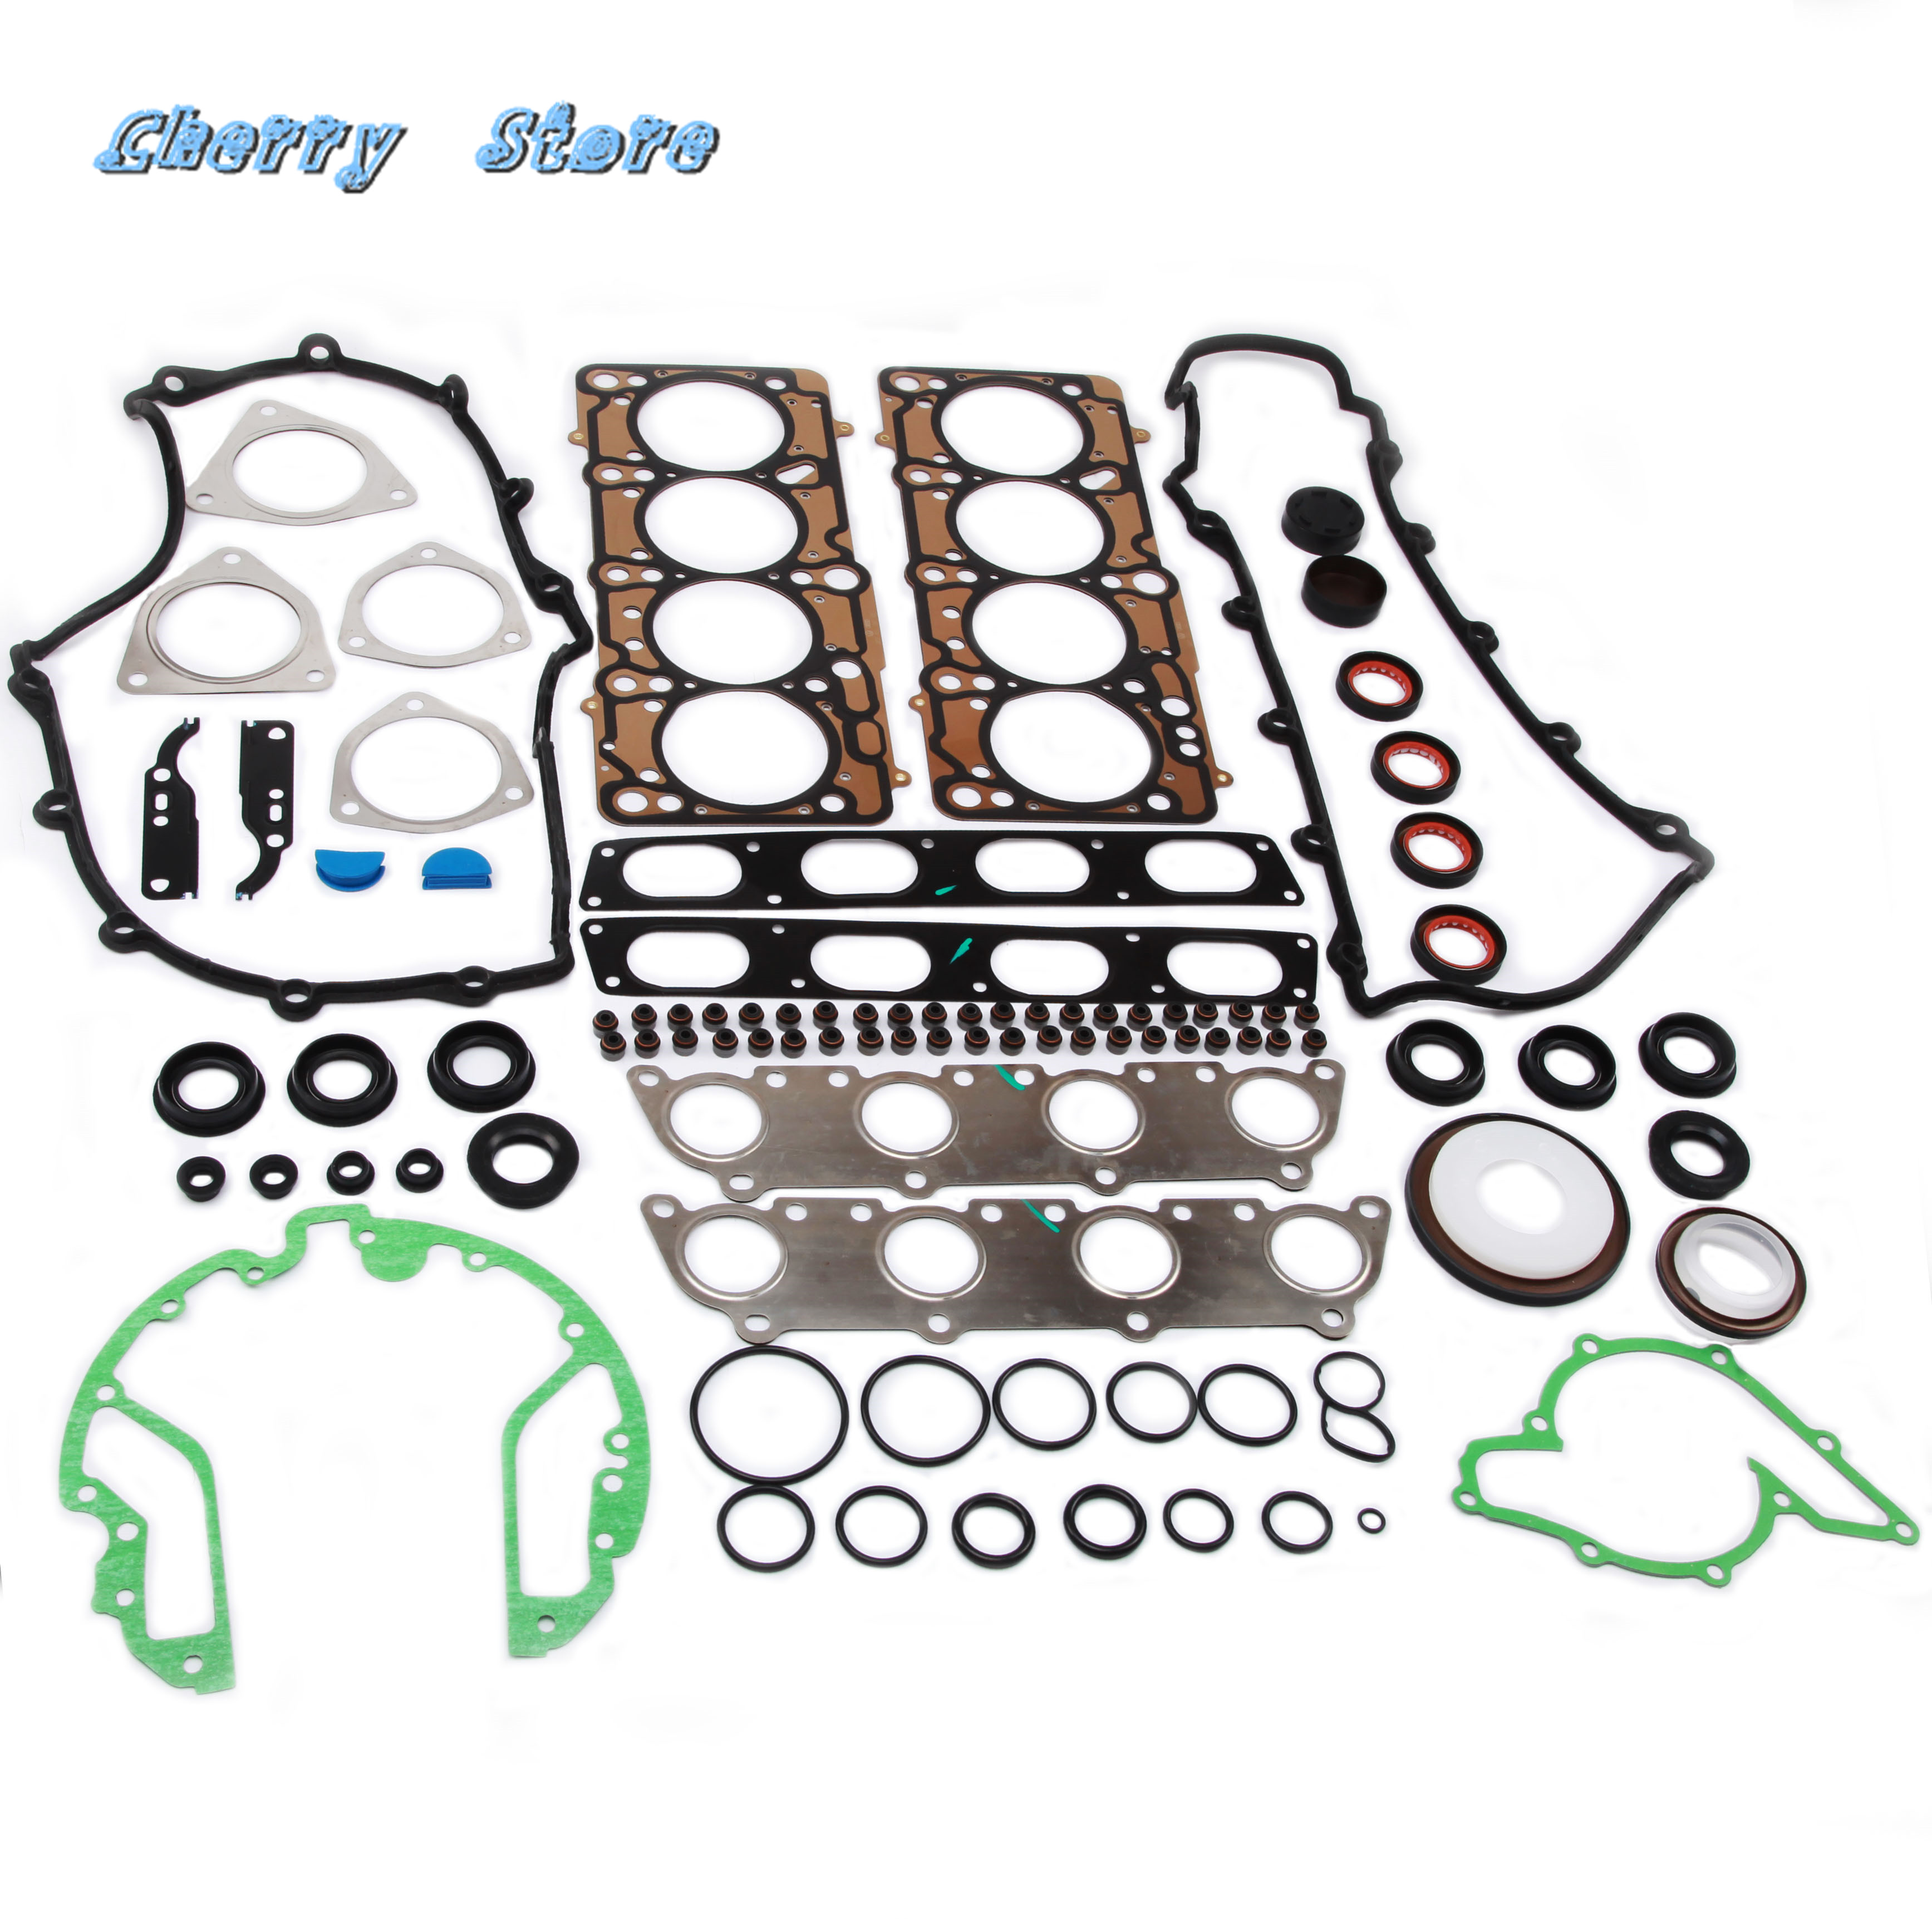 077103383BT Engine Cylinder Head Gaskets Engine Seal Repair Kit For Volkswagen Touareg Audi A6 S6 A8 S8 3.7L 4.2L 077 103 383 BN